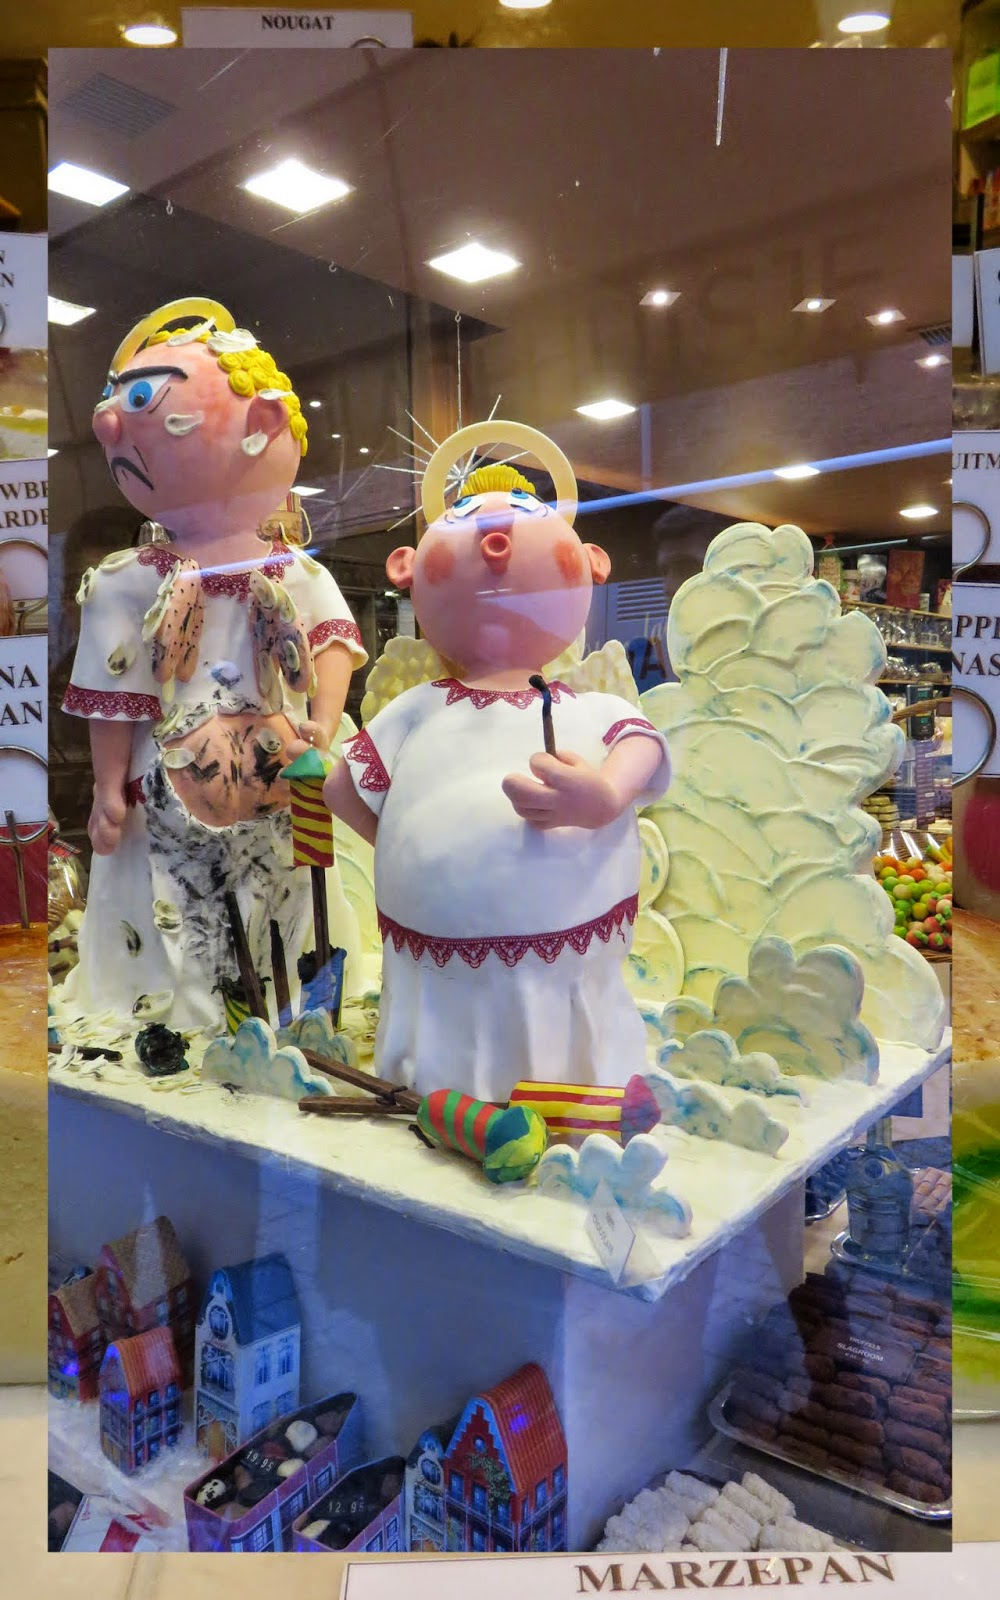 15 Reasons to Visit Bruges for Christmas: Marzipan angel display in Bruges